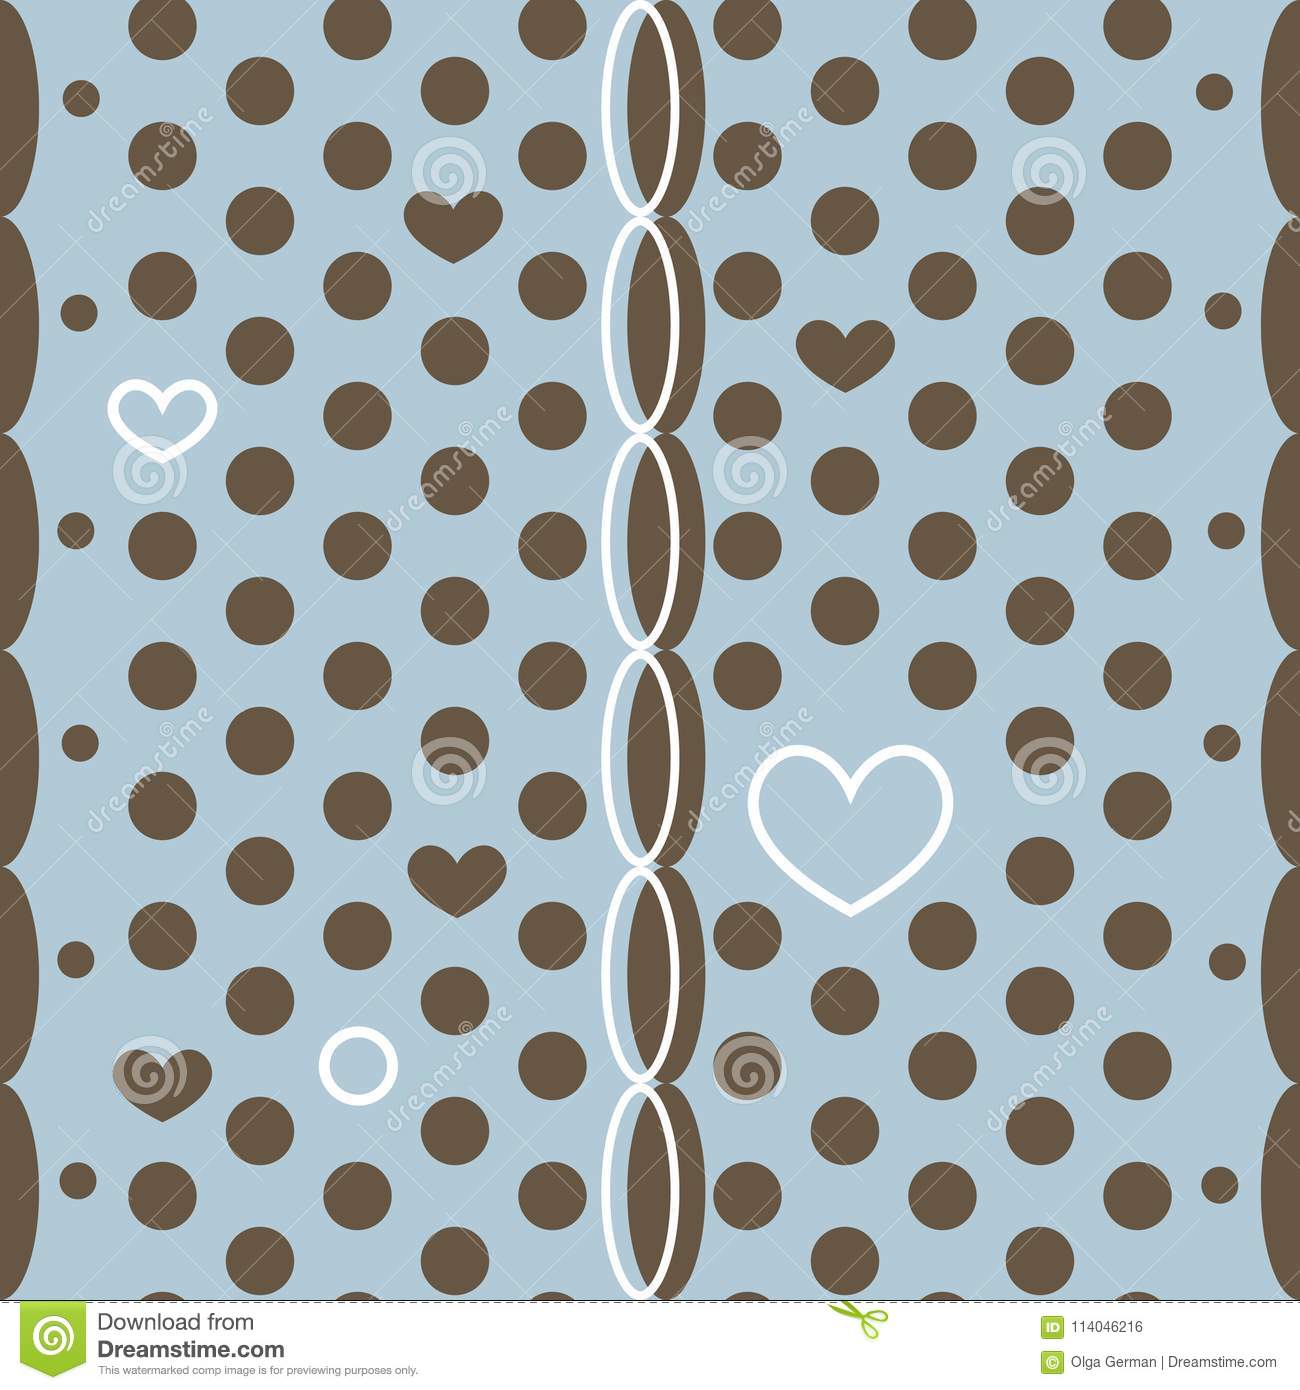 Abstract polka dot vector seamless pattern with little hearts and weave